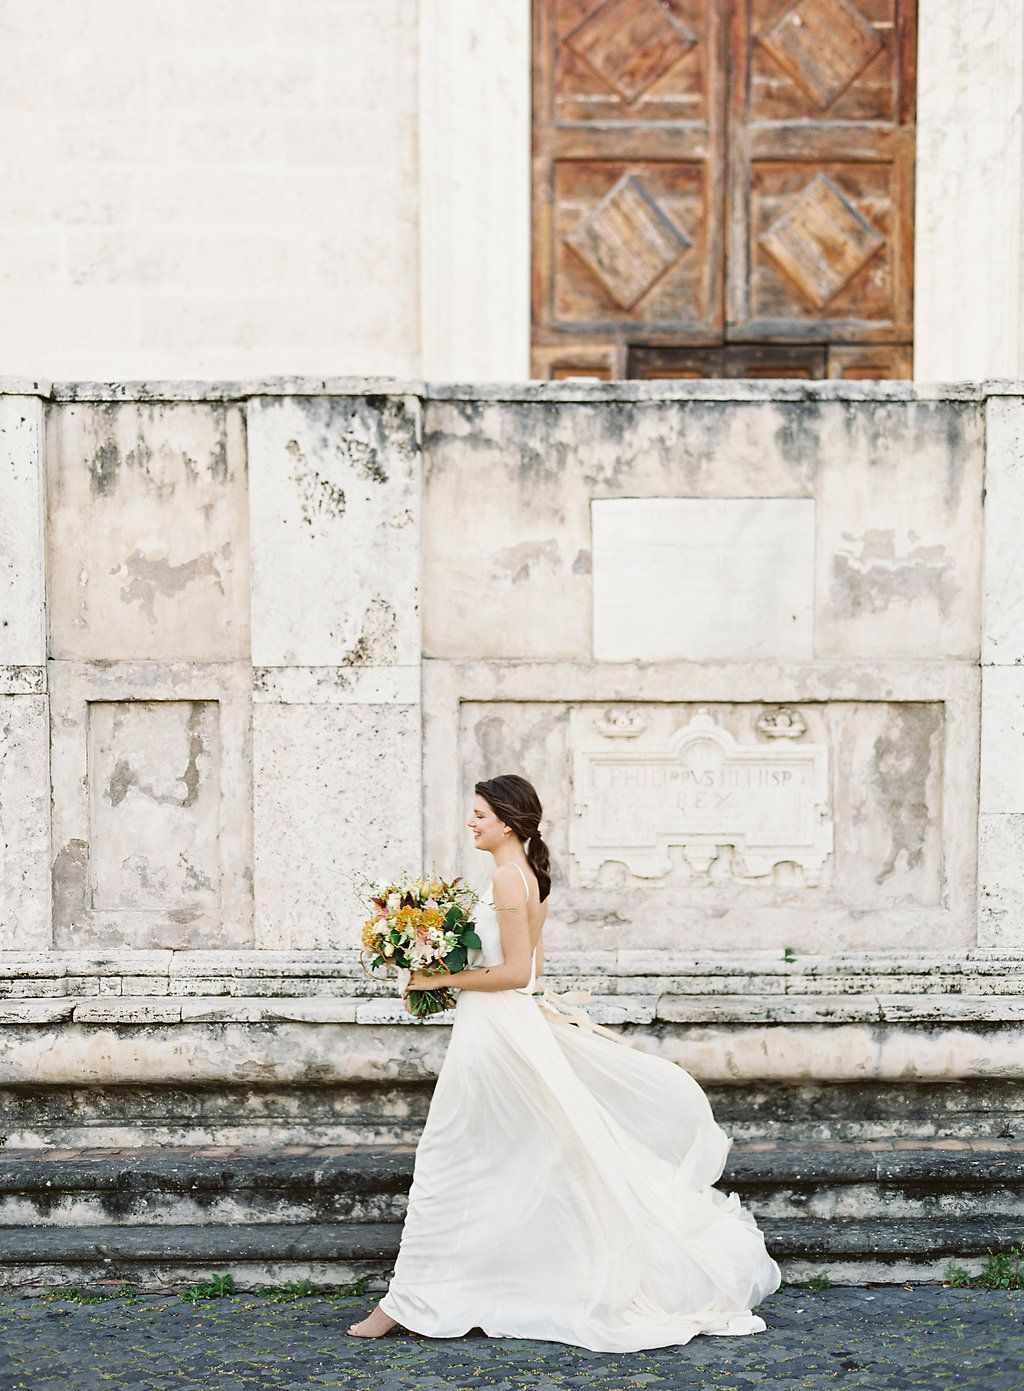 Vicki_Grafton_Photography_Rome_Italy_Wedding_Photographer_2017-22